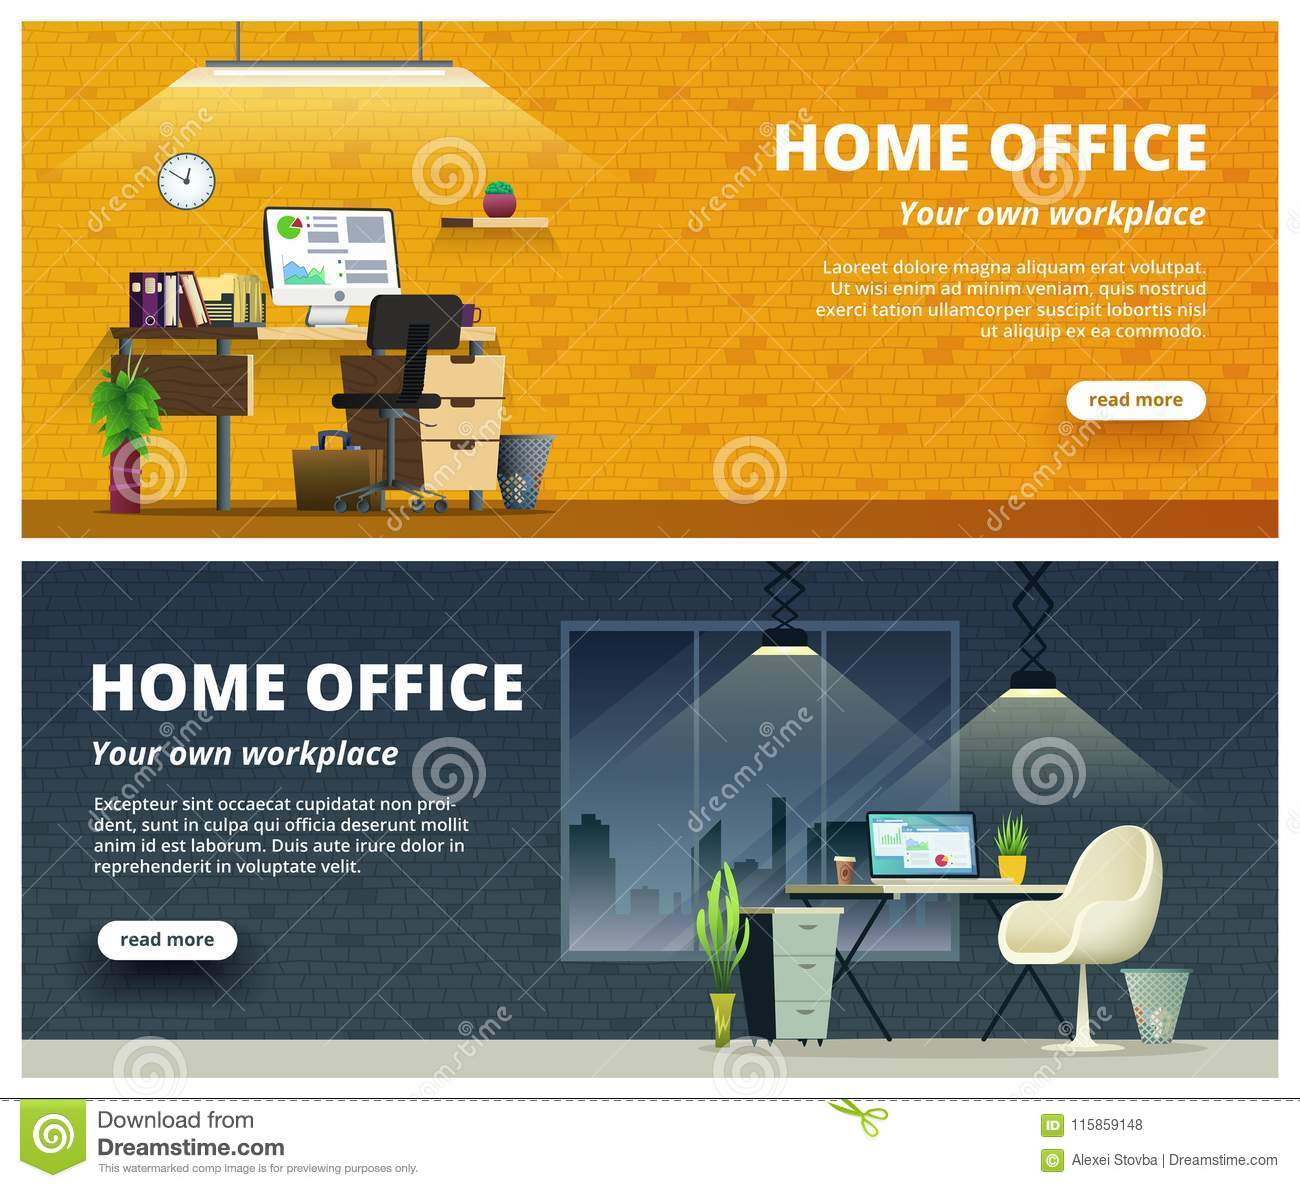 Delicieux Download Office Workplace Interior Design Banner. Home Office Concept  Illustration. Stock Vector   Illustration